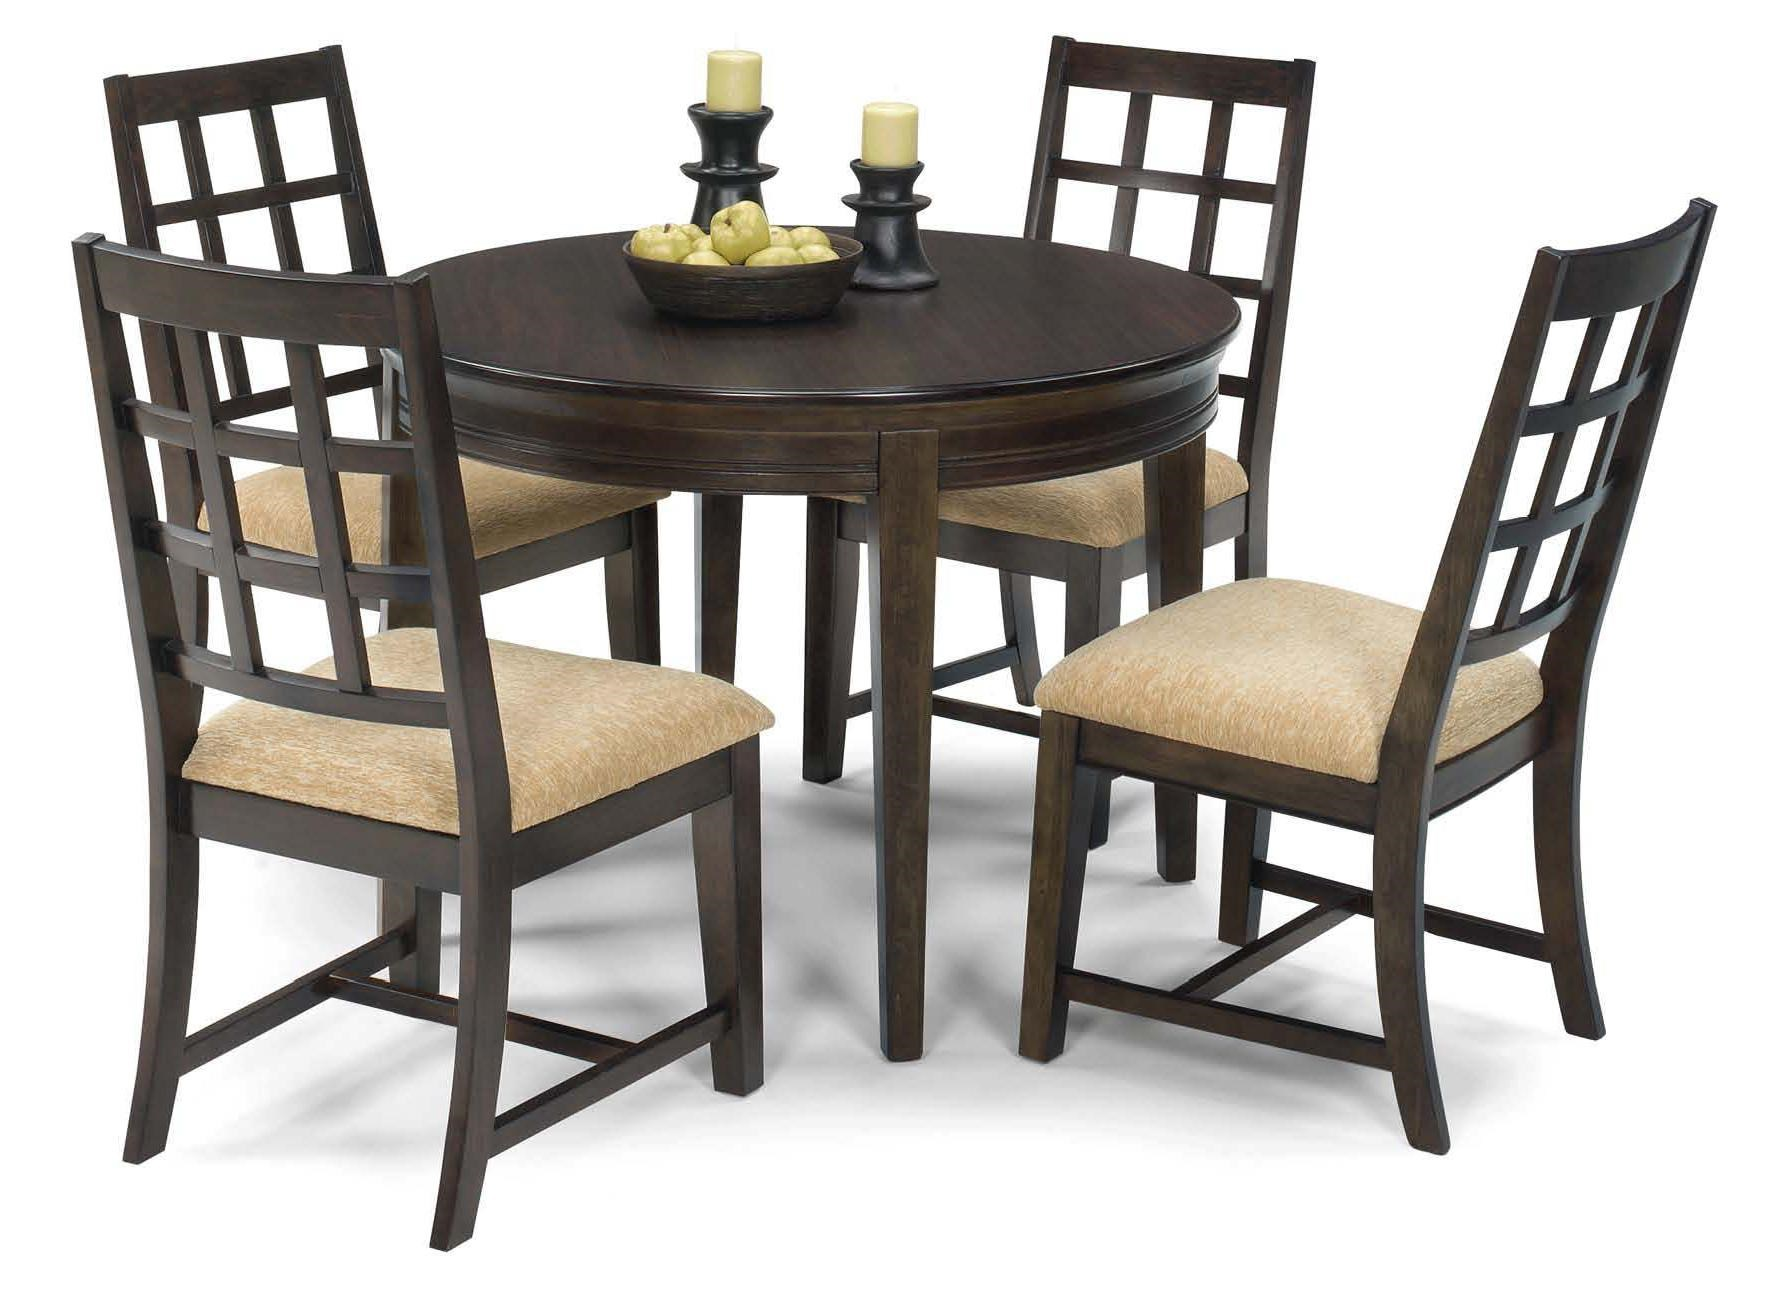 Progressive Furniture Casual Traditions Casual 5 Piece  : products2Fprogressivefurniture2Fcolor2Fcasual20traditions20 20 1150104510p107 132B4x61 b0jpgscalebothampwidth500ampheight500ampfsharpen25ampdown from www.bullardfurniture.com size 500 x 500 jpeg 41kB